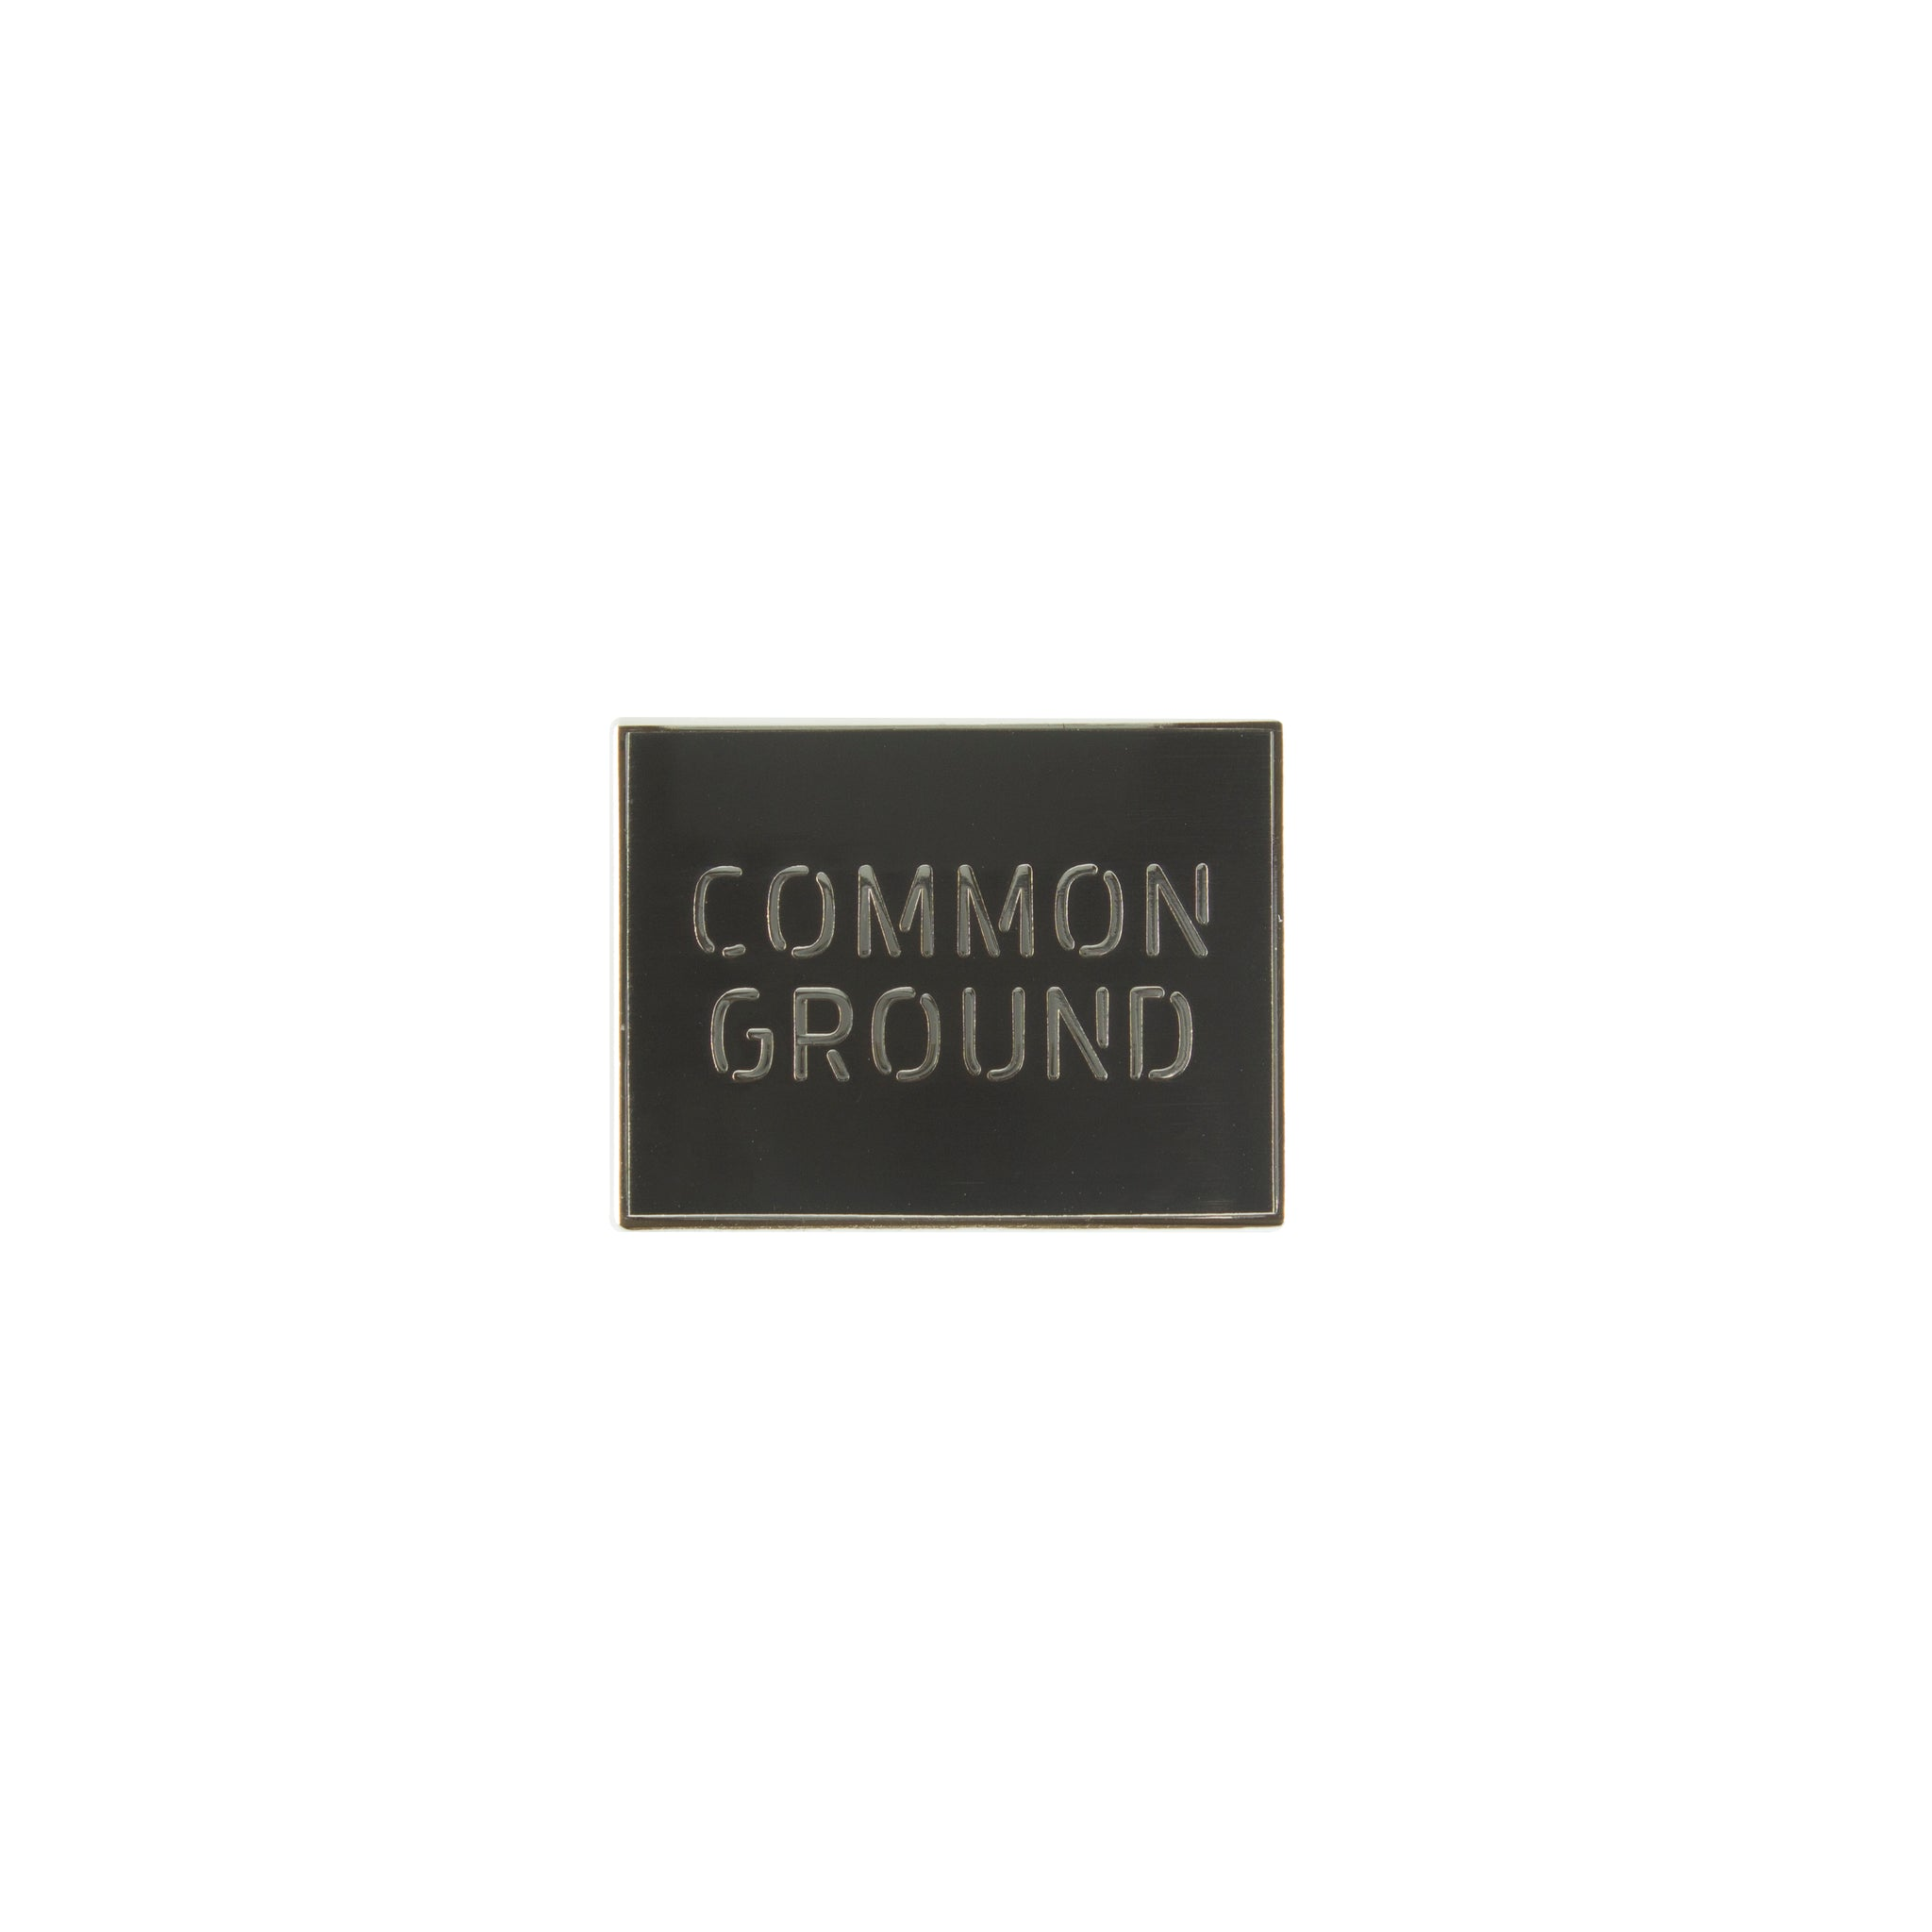 Jet_Black - Common Ground Pin Front View